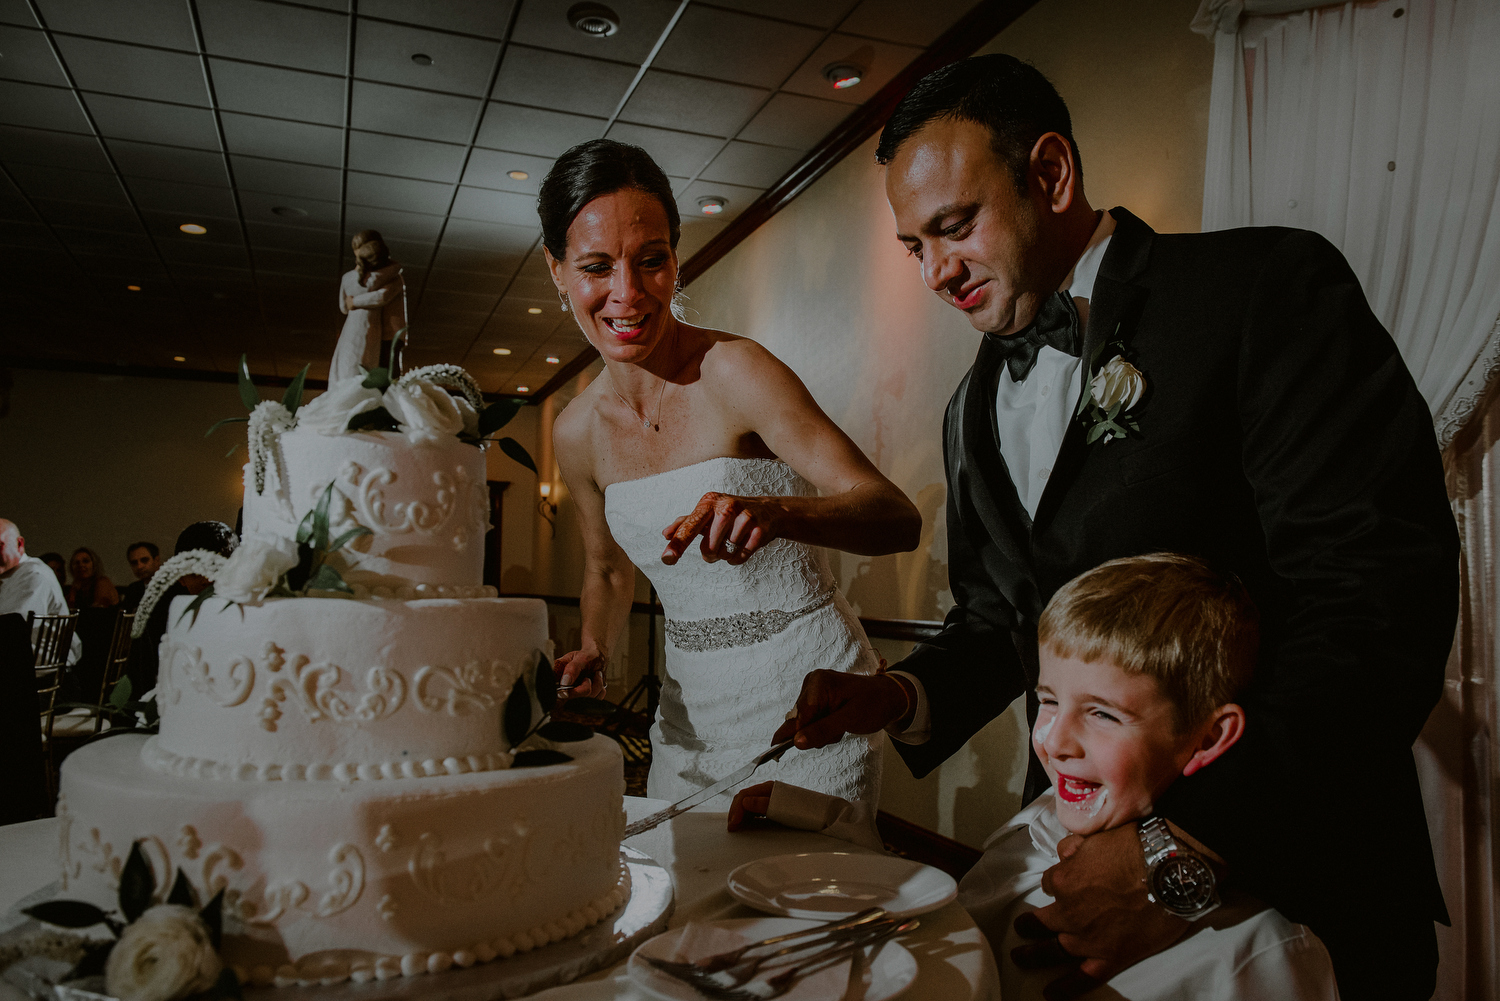 candid cake cutting moment